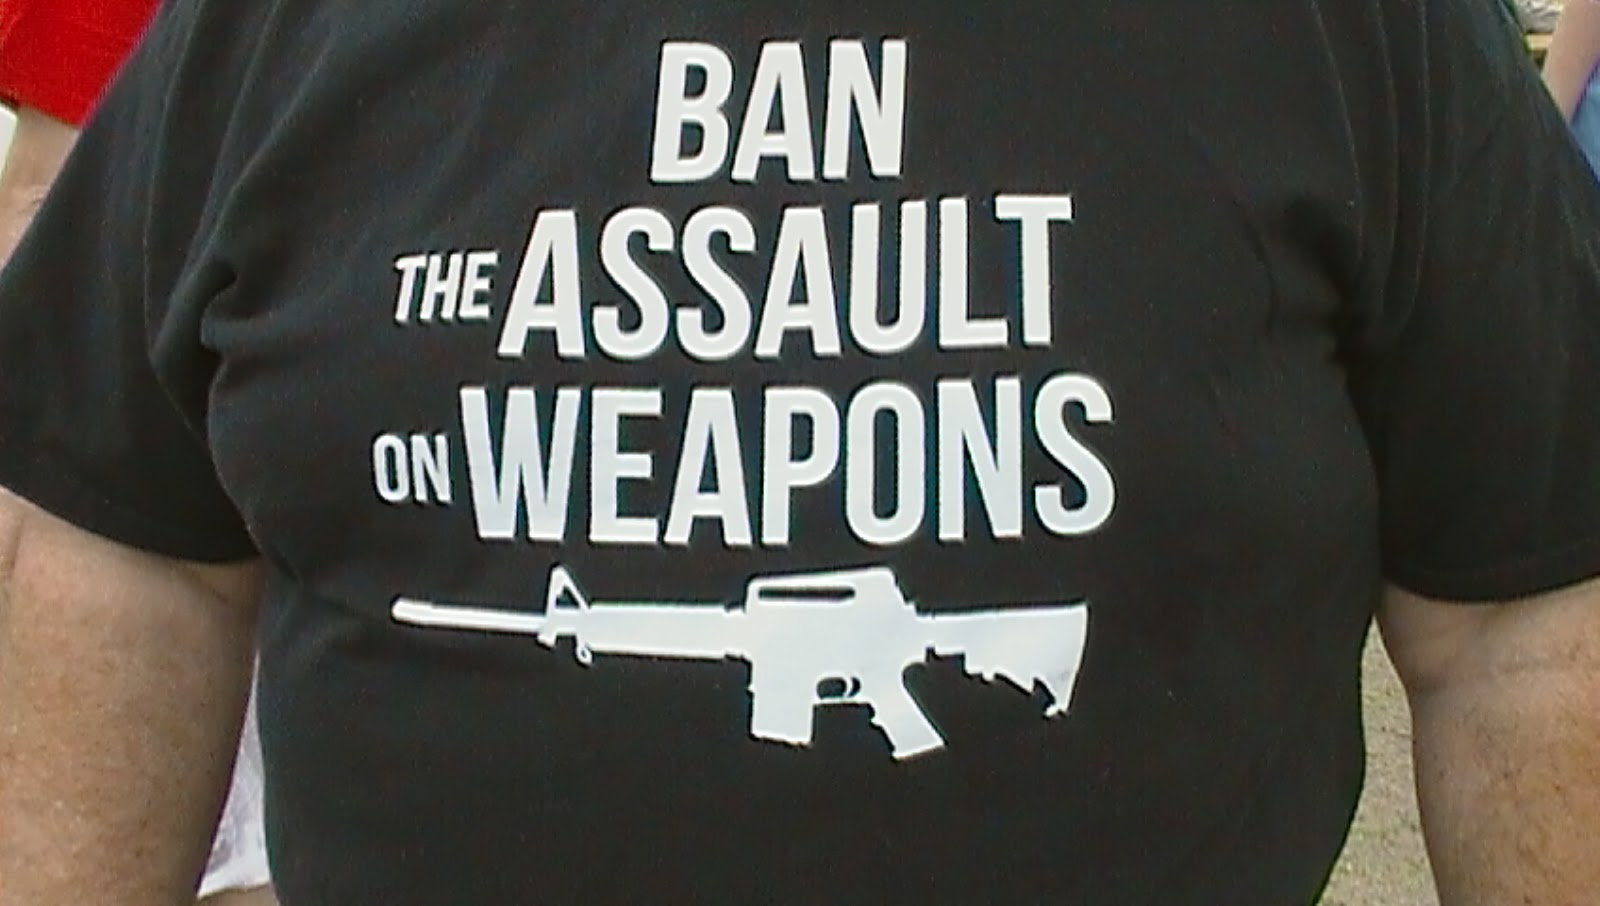 BAN the ASSAULT on WEAPONS